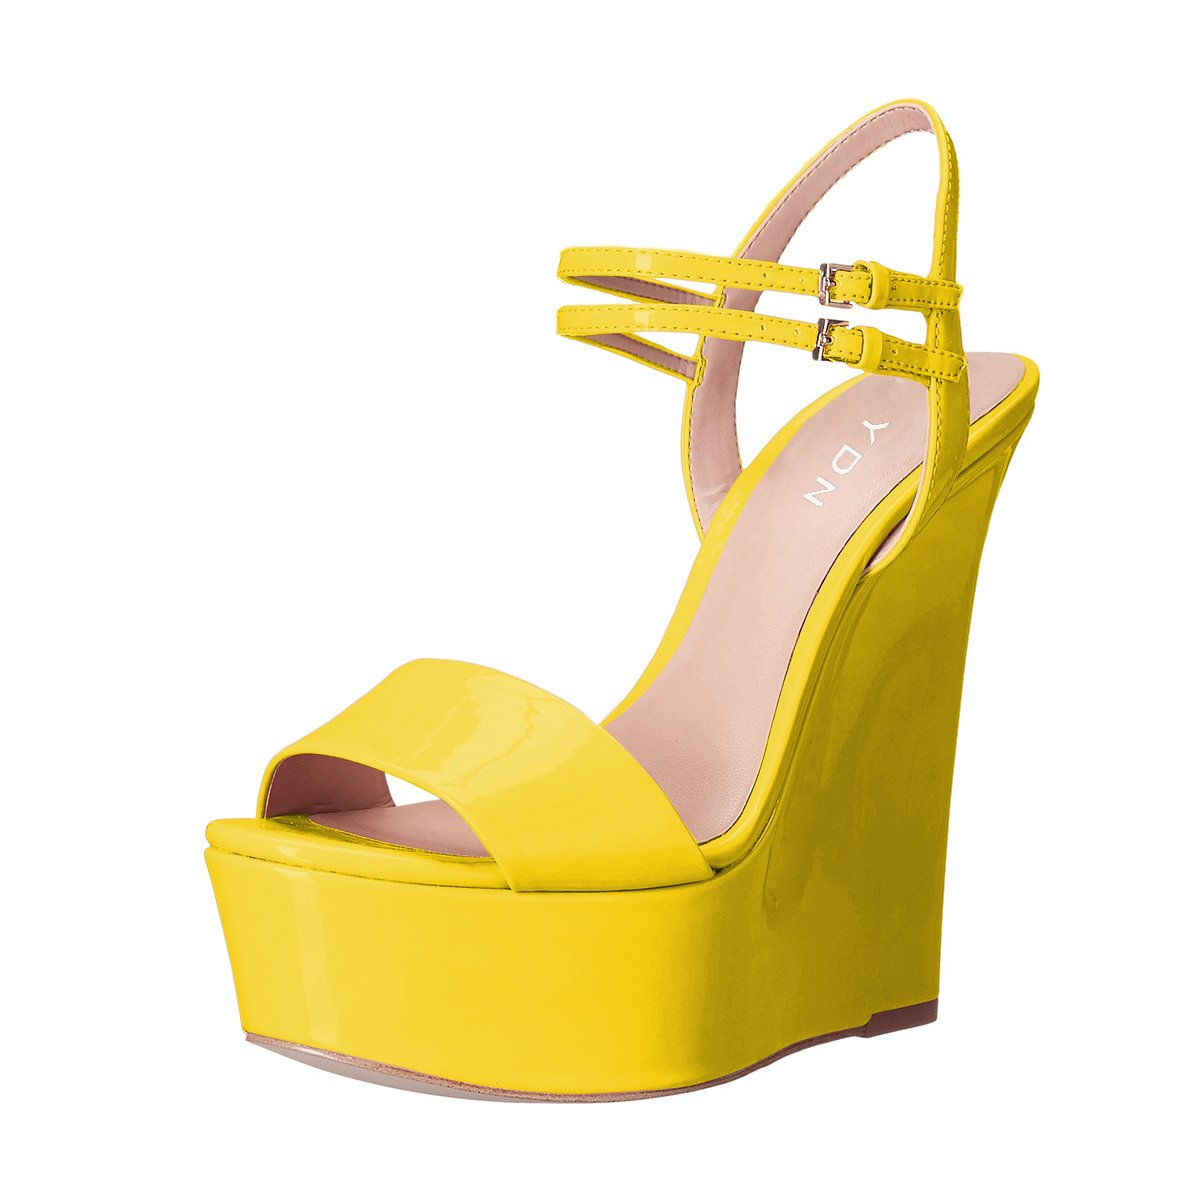 YDN Women Peep Toe High Heel Wedge Sandals Ankle Straps Platform Pumps Slingback Shoes B0711LC6XR 9 B(M) US|Yellow